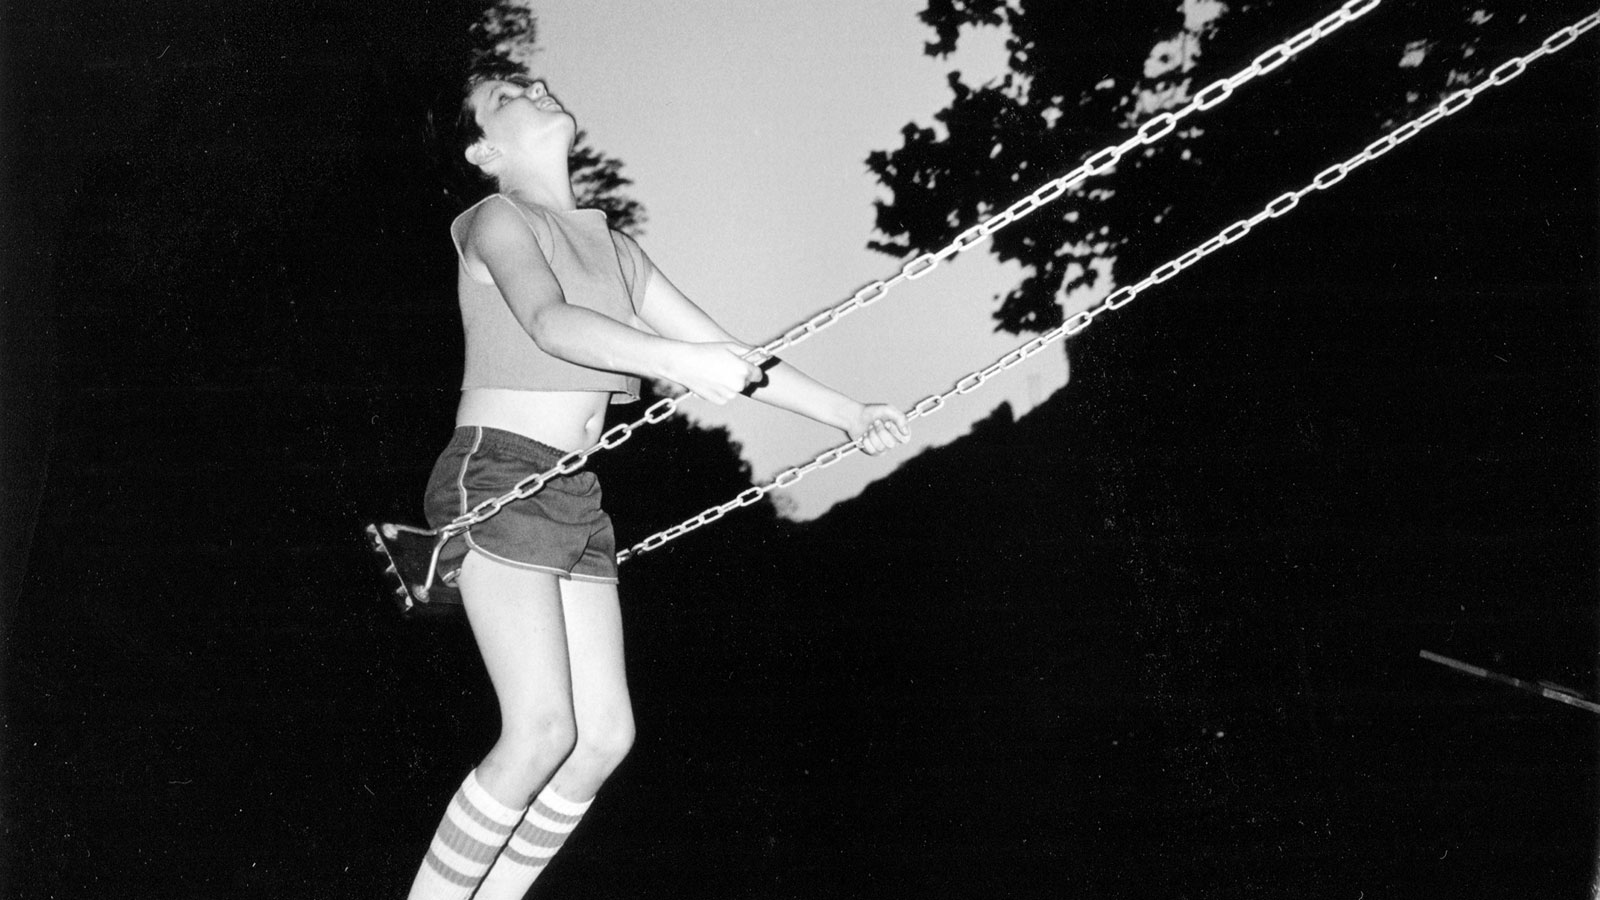 Detail Of/aus: David On Swing, West Virginia 1987, 44 X 29,5 Cm, Archival Pigment Print, Ed. Of 5 + 2 AP's © Bertien Van Manen, Courtesy Robert Morat Galerie